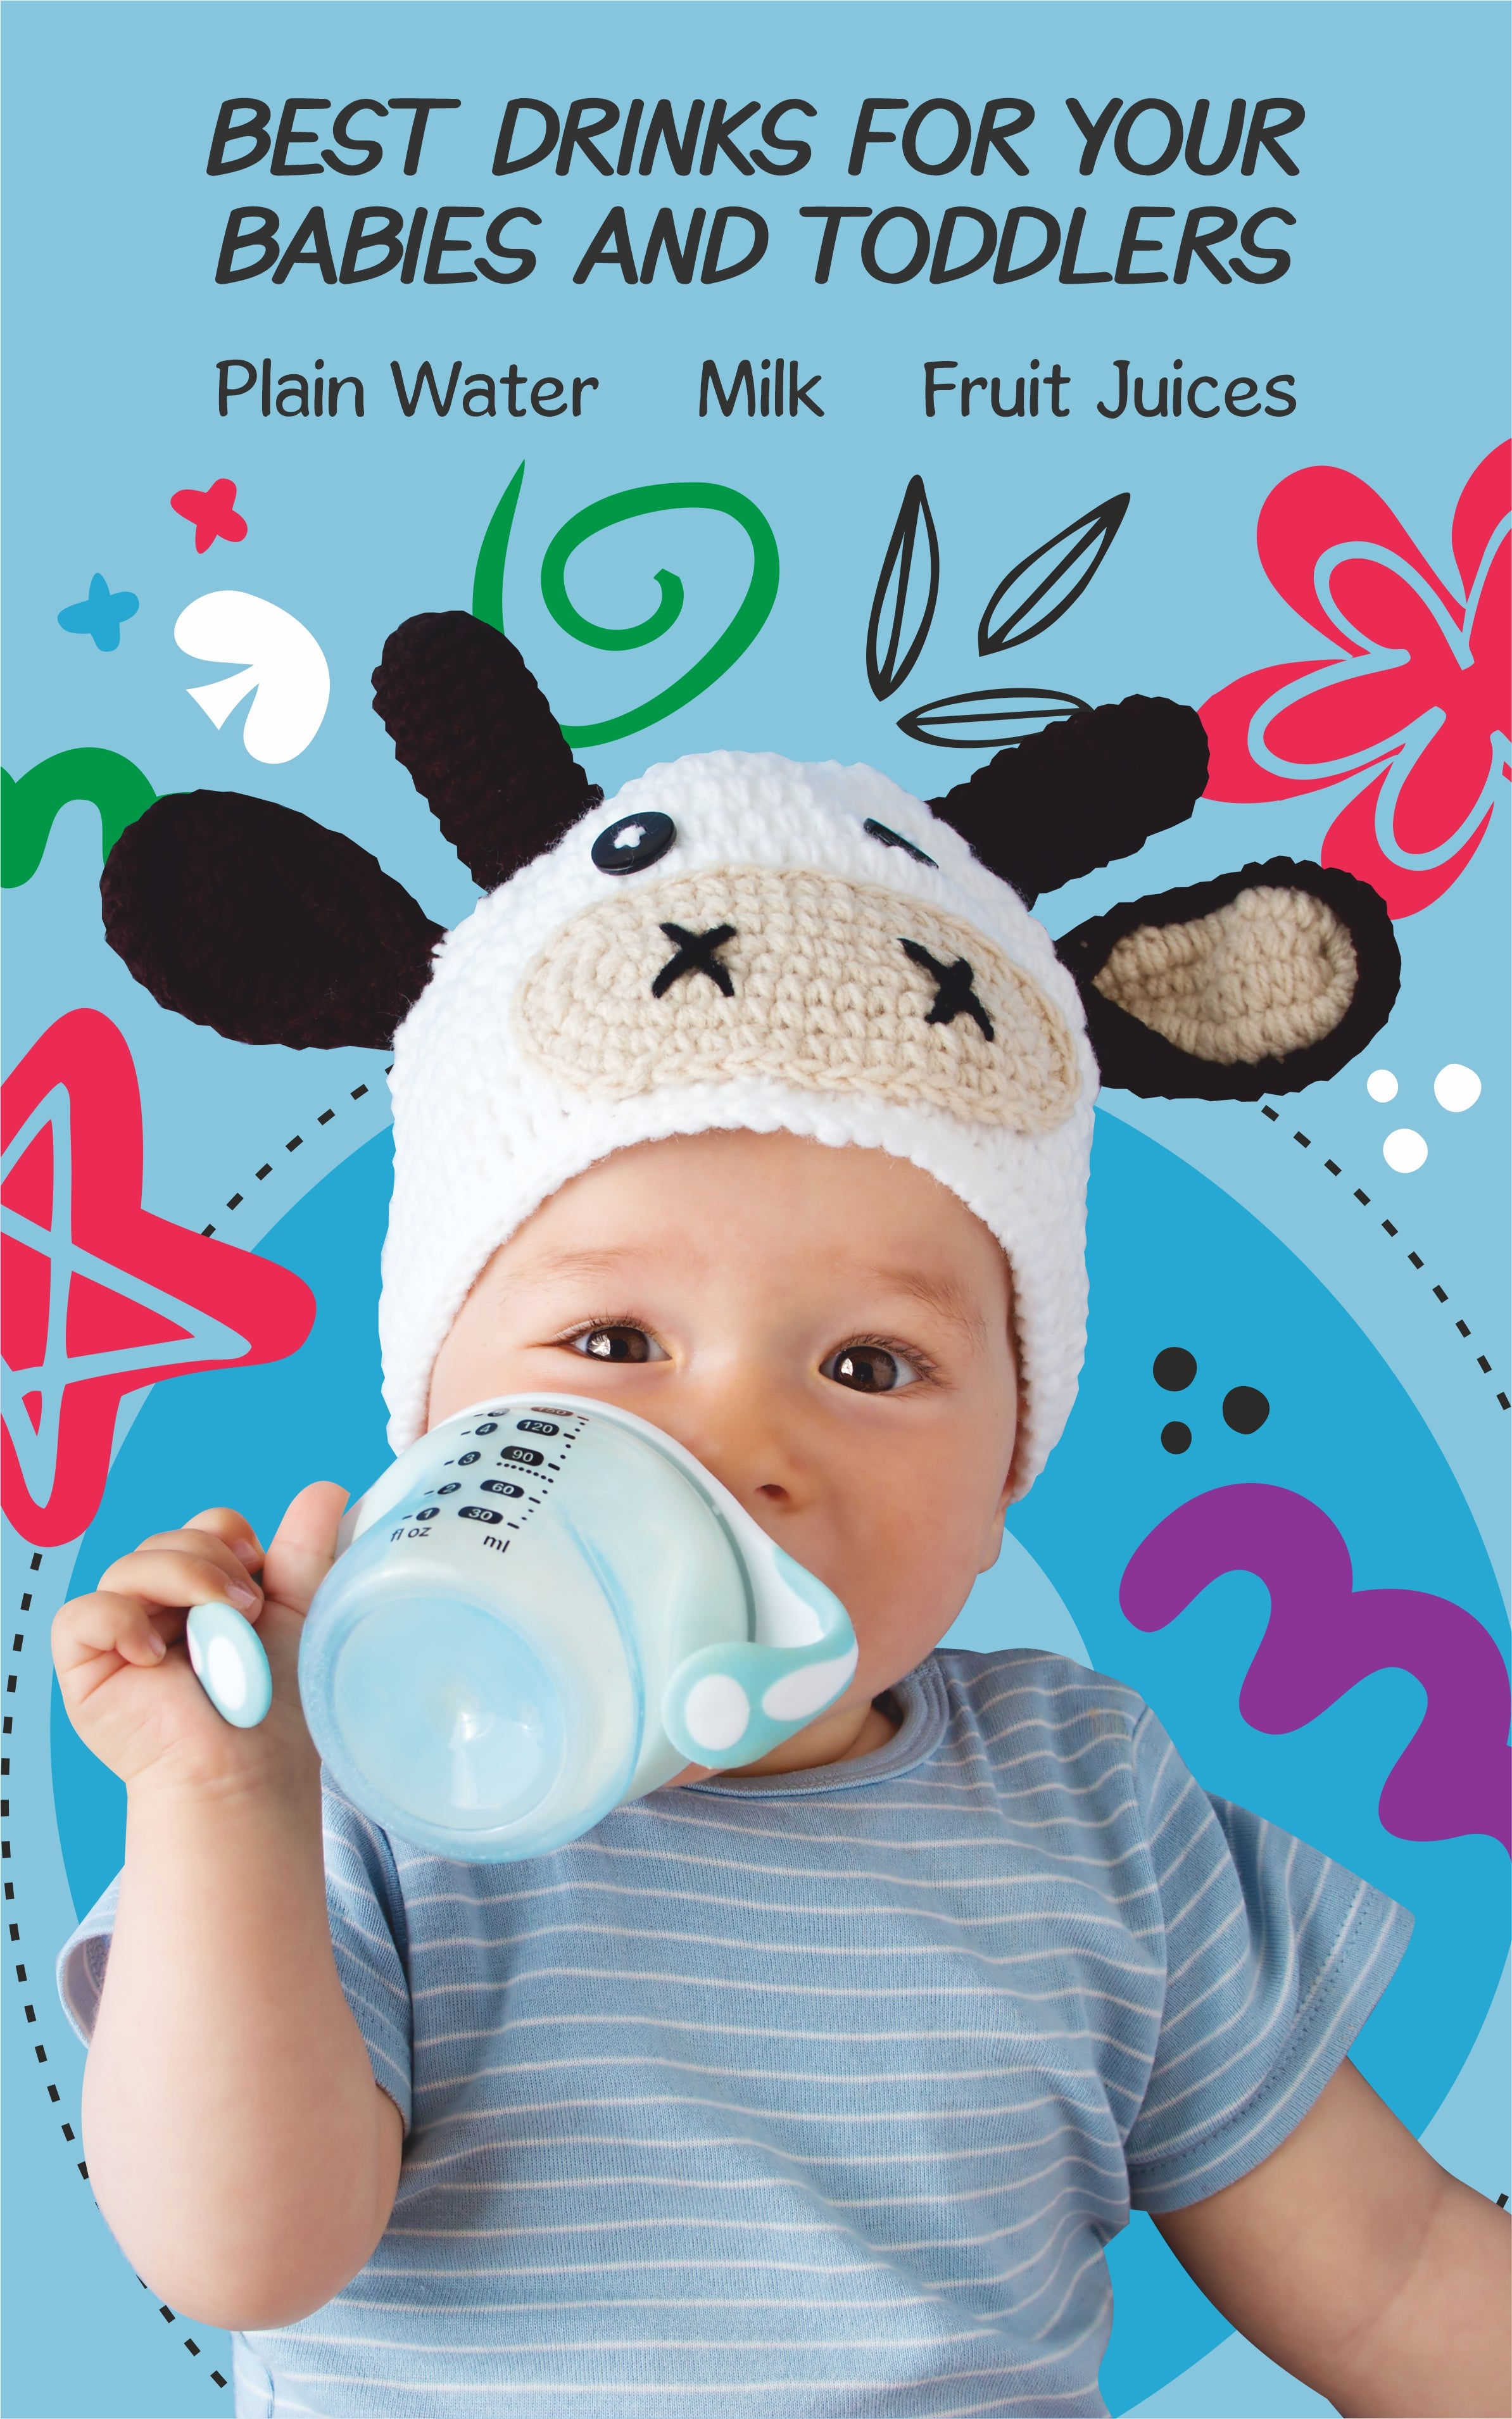 Best Drinks for Your Babies and Toddlers